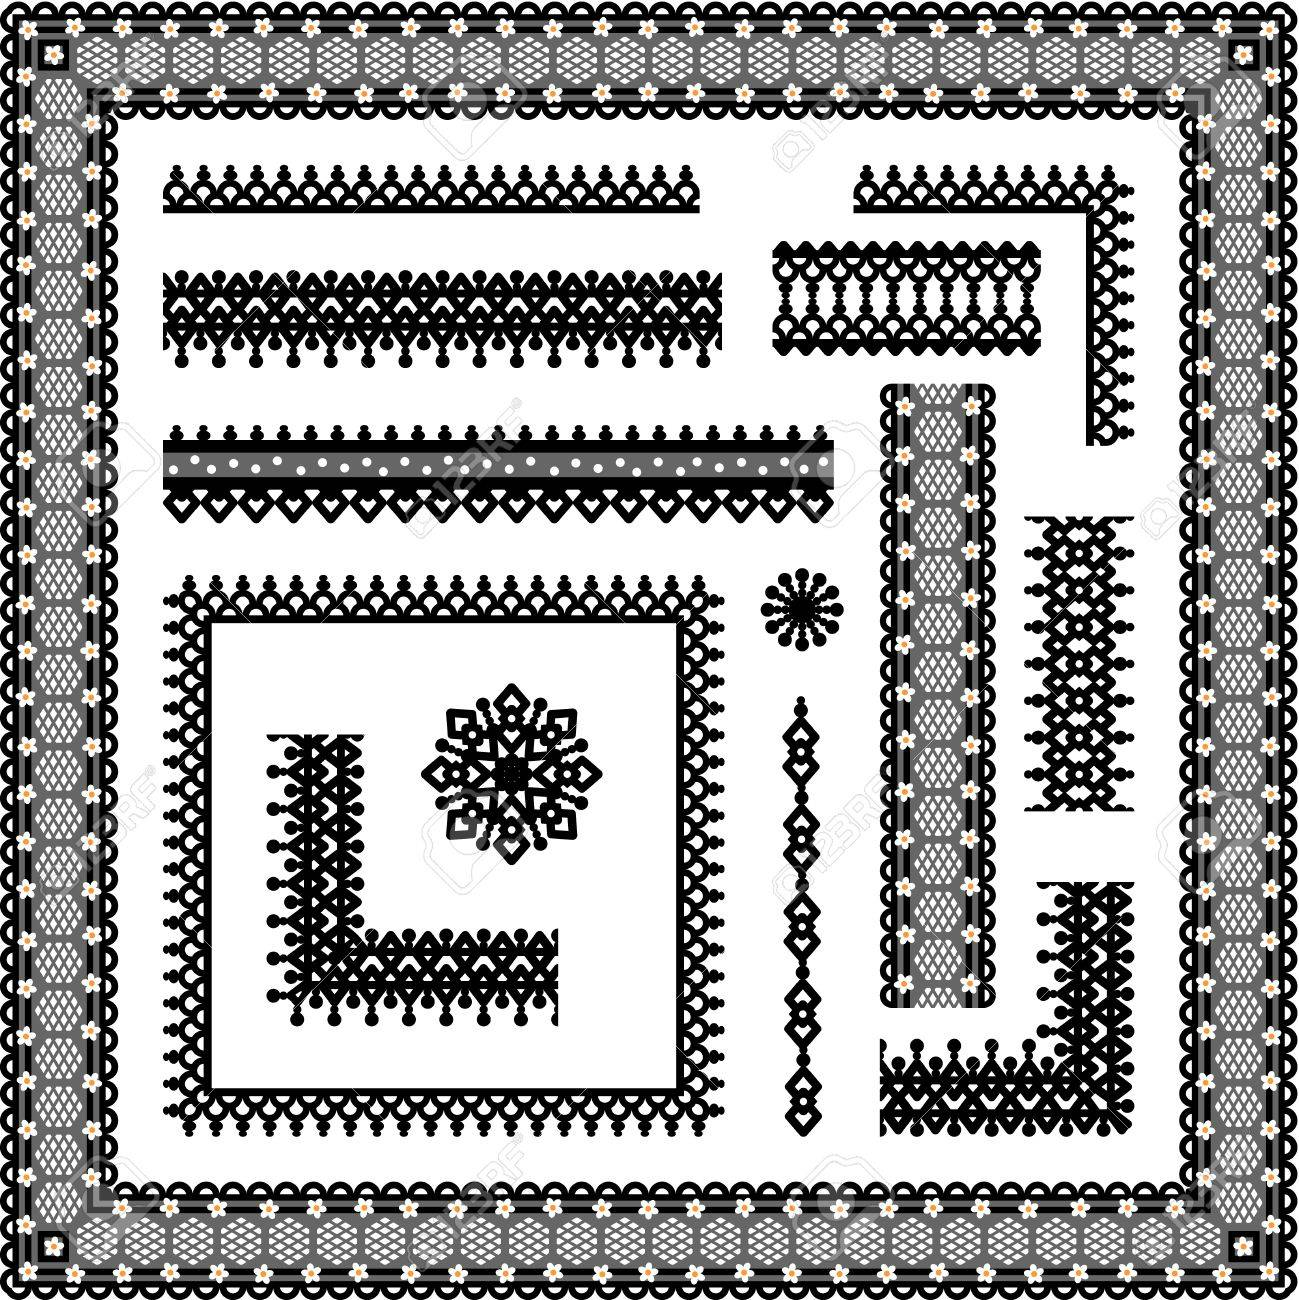 Lace design elements collection  seamless borders, corners, full frames, vignettes on transparent background Stock Vector - 27347324